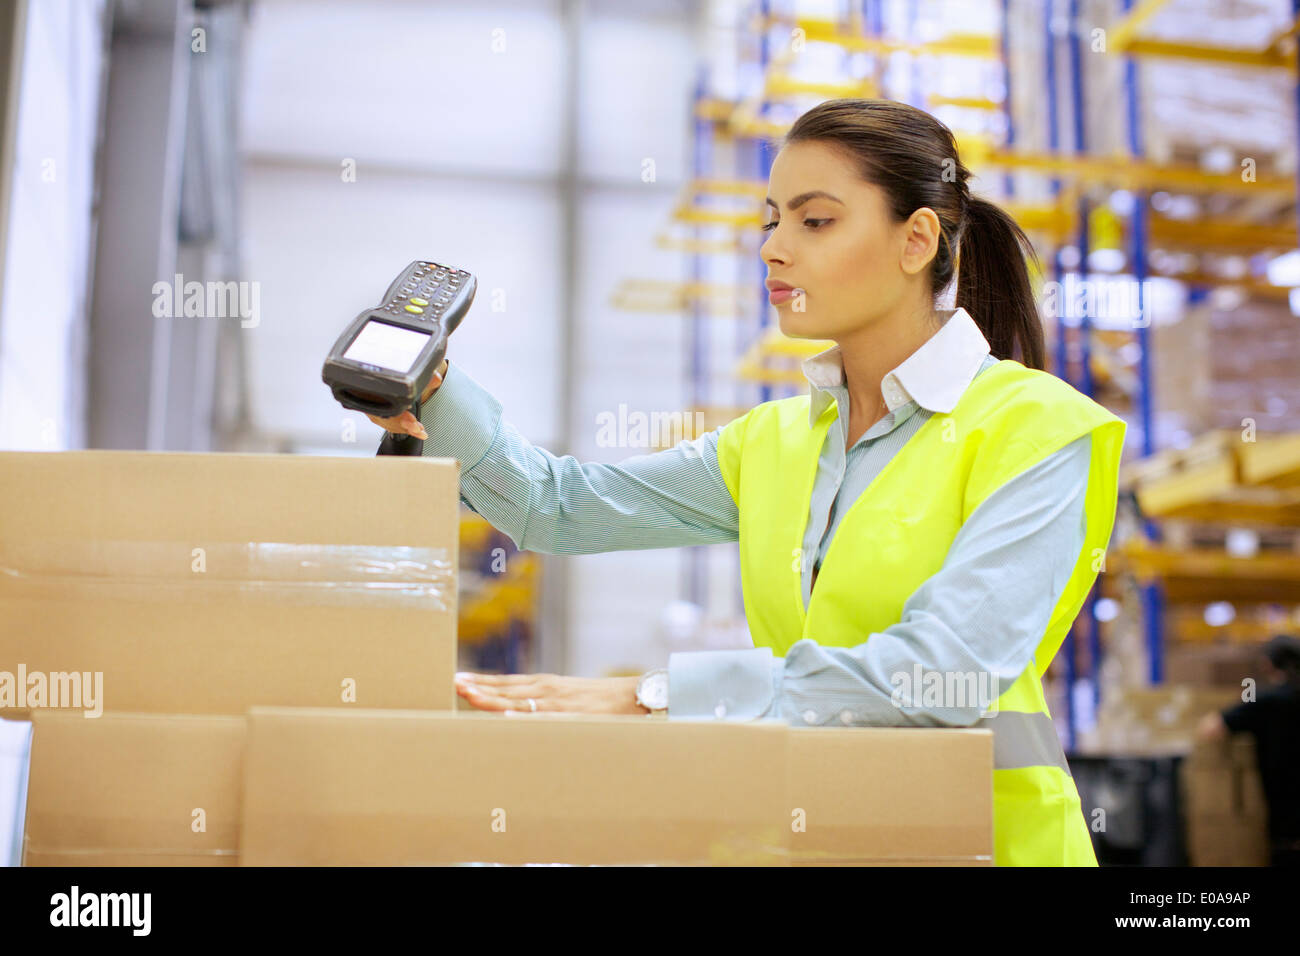 Young woman using barcode reader in distribution warehouse - Stock Image